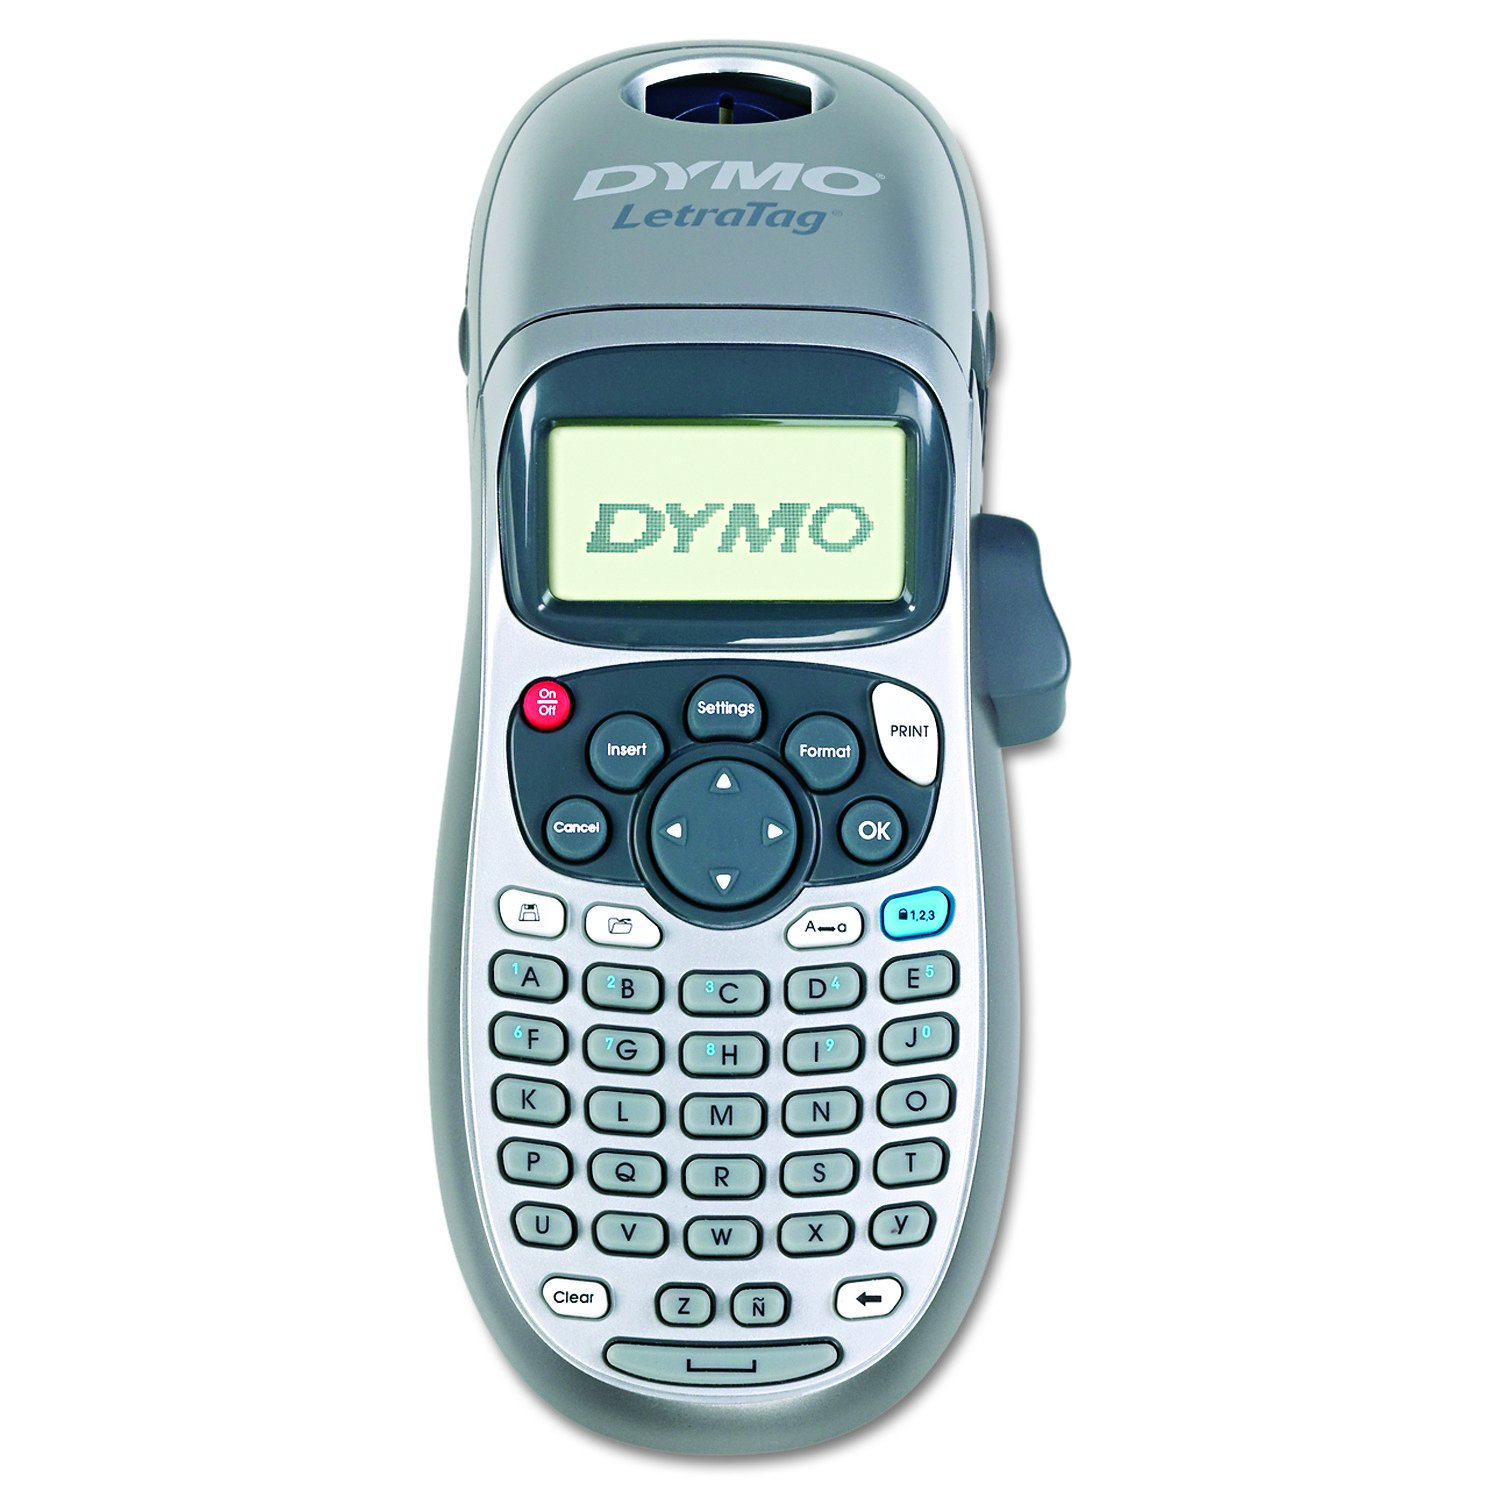 DYMO LetraTag LT-100H Handheld Label Maker for Office or Home (21455) by DYMO